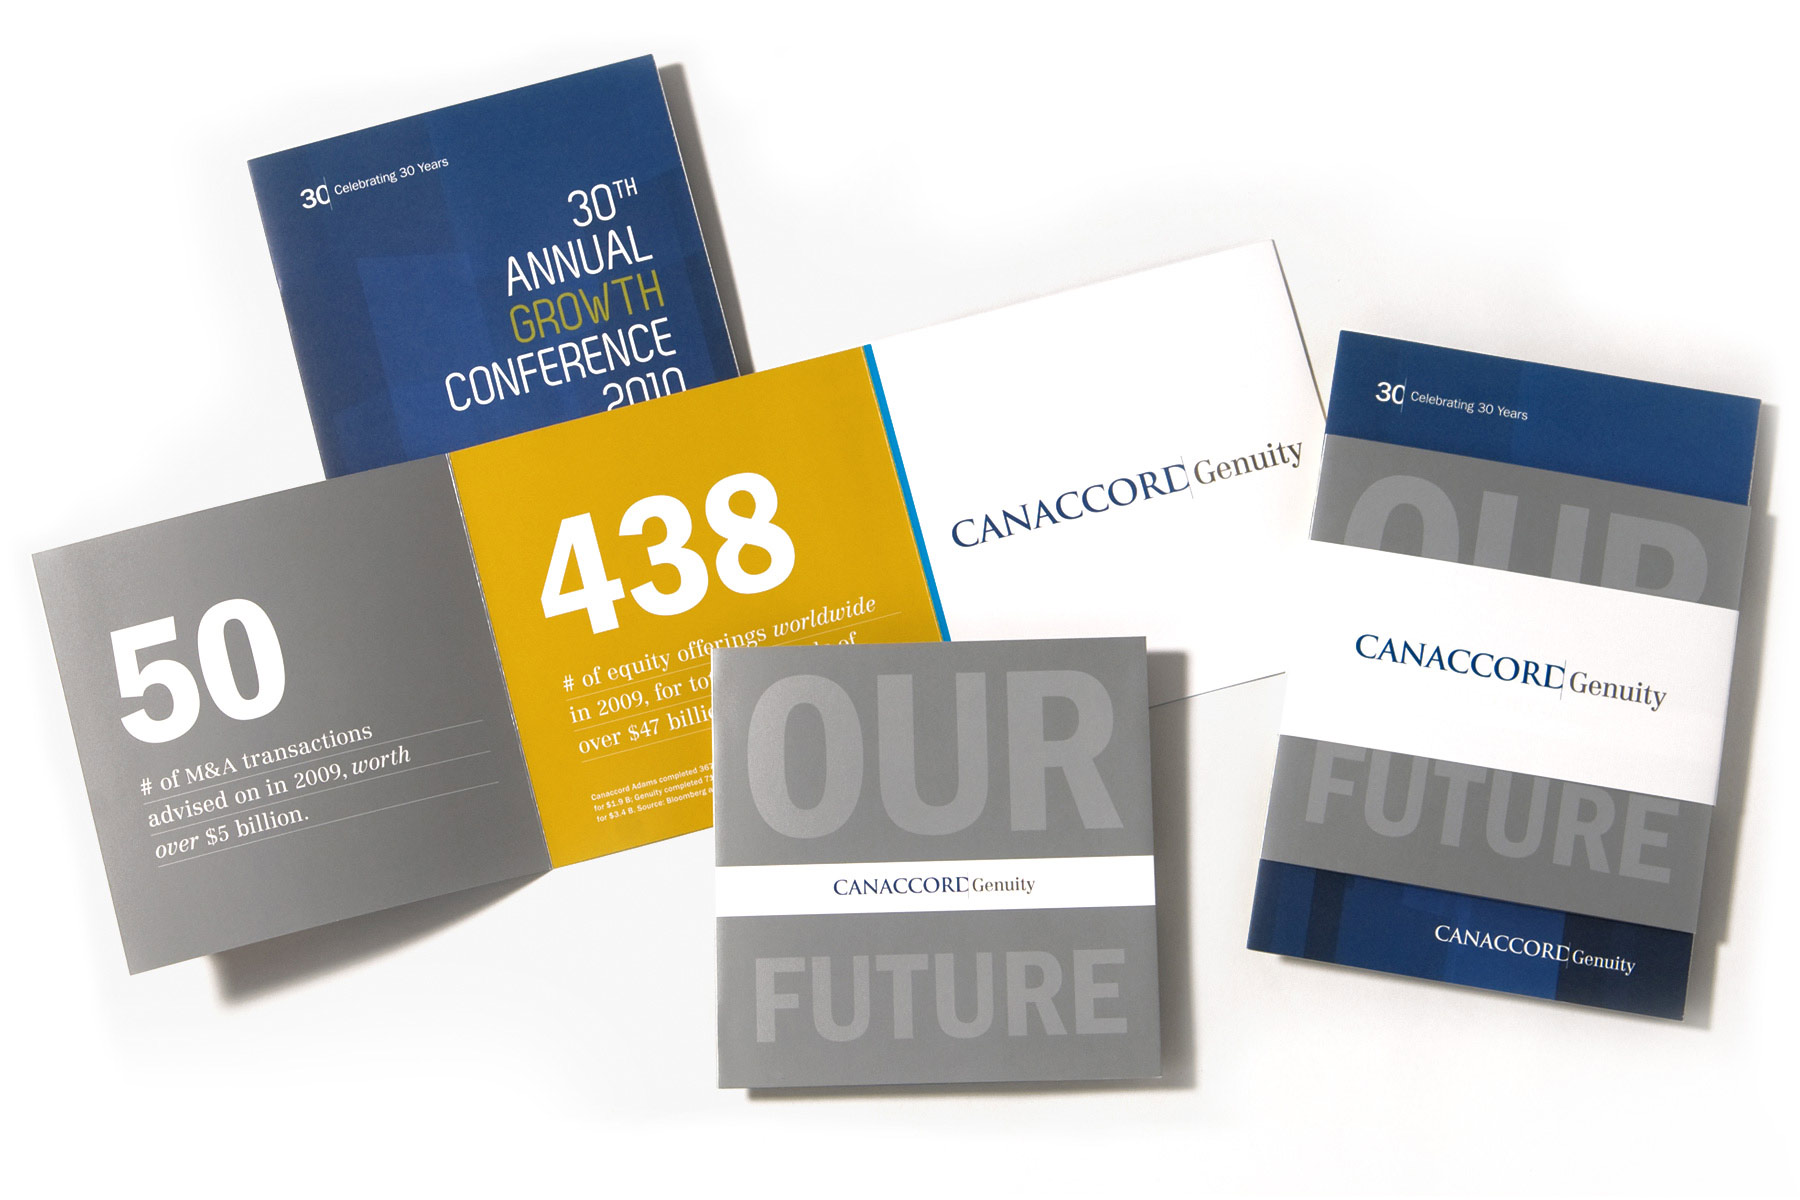 Canaccord Genuity Growth Conference printed 30th anniversary invite